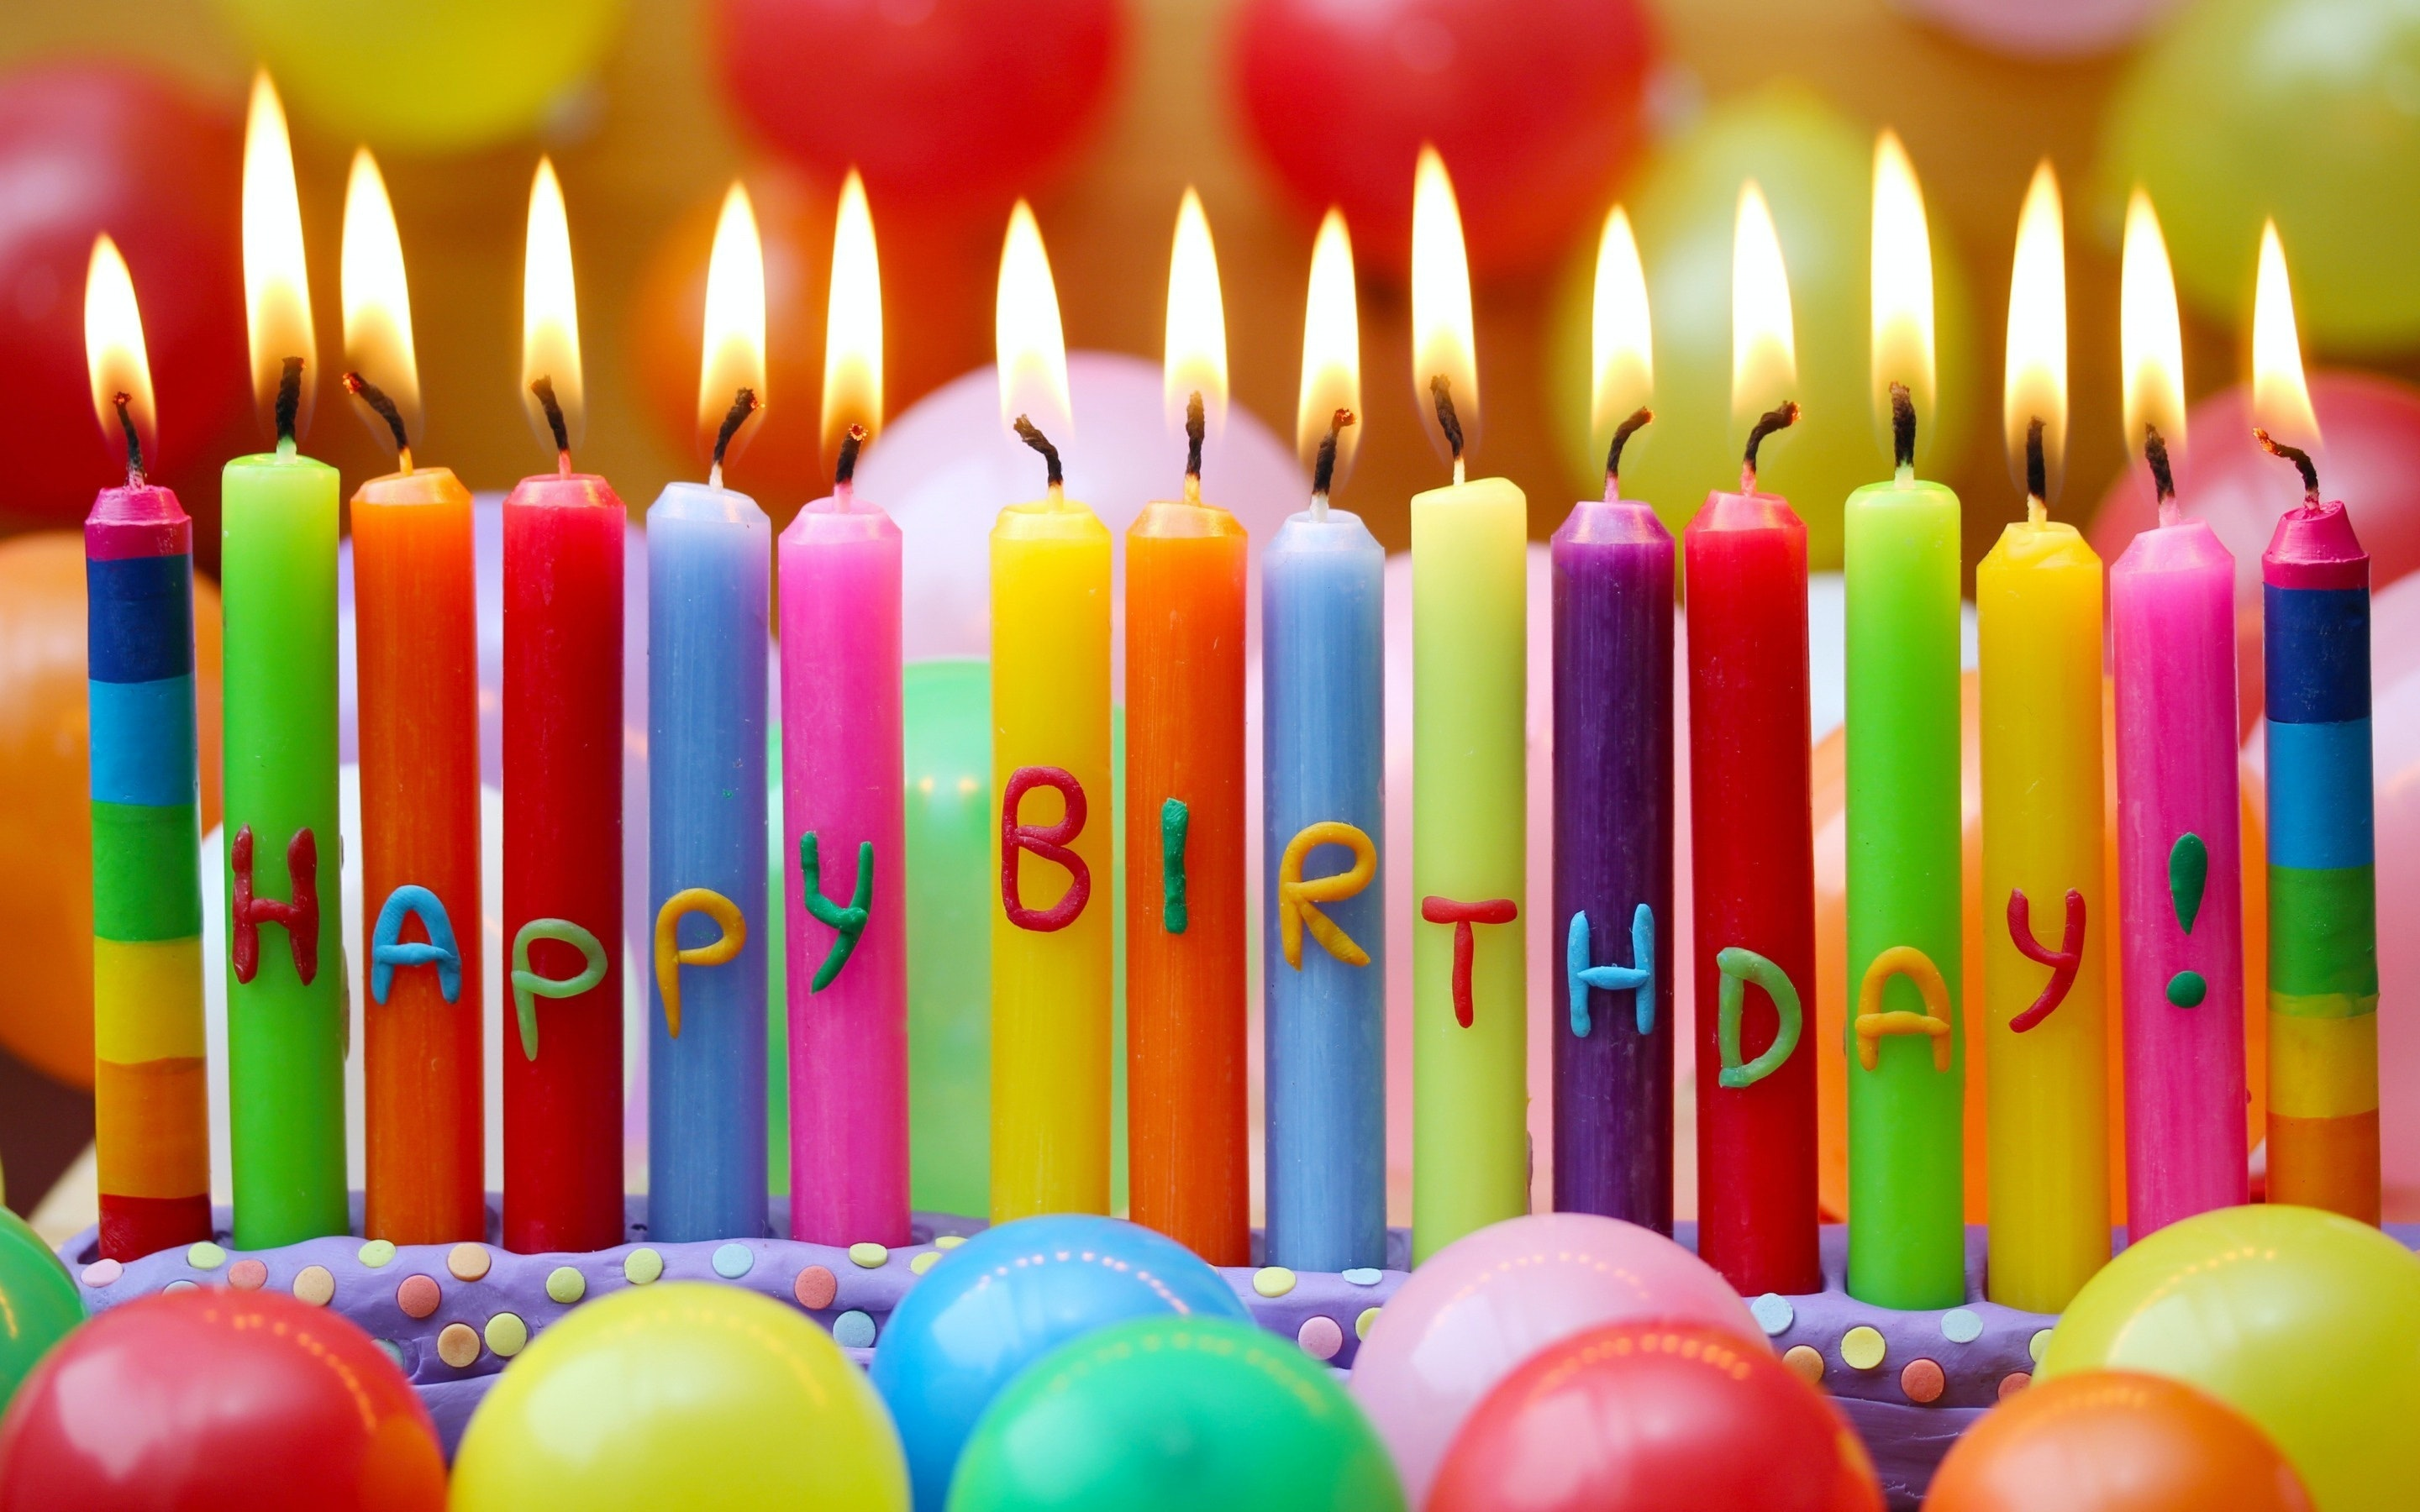 free stock photo of awesome birthday hd images, happy birthday